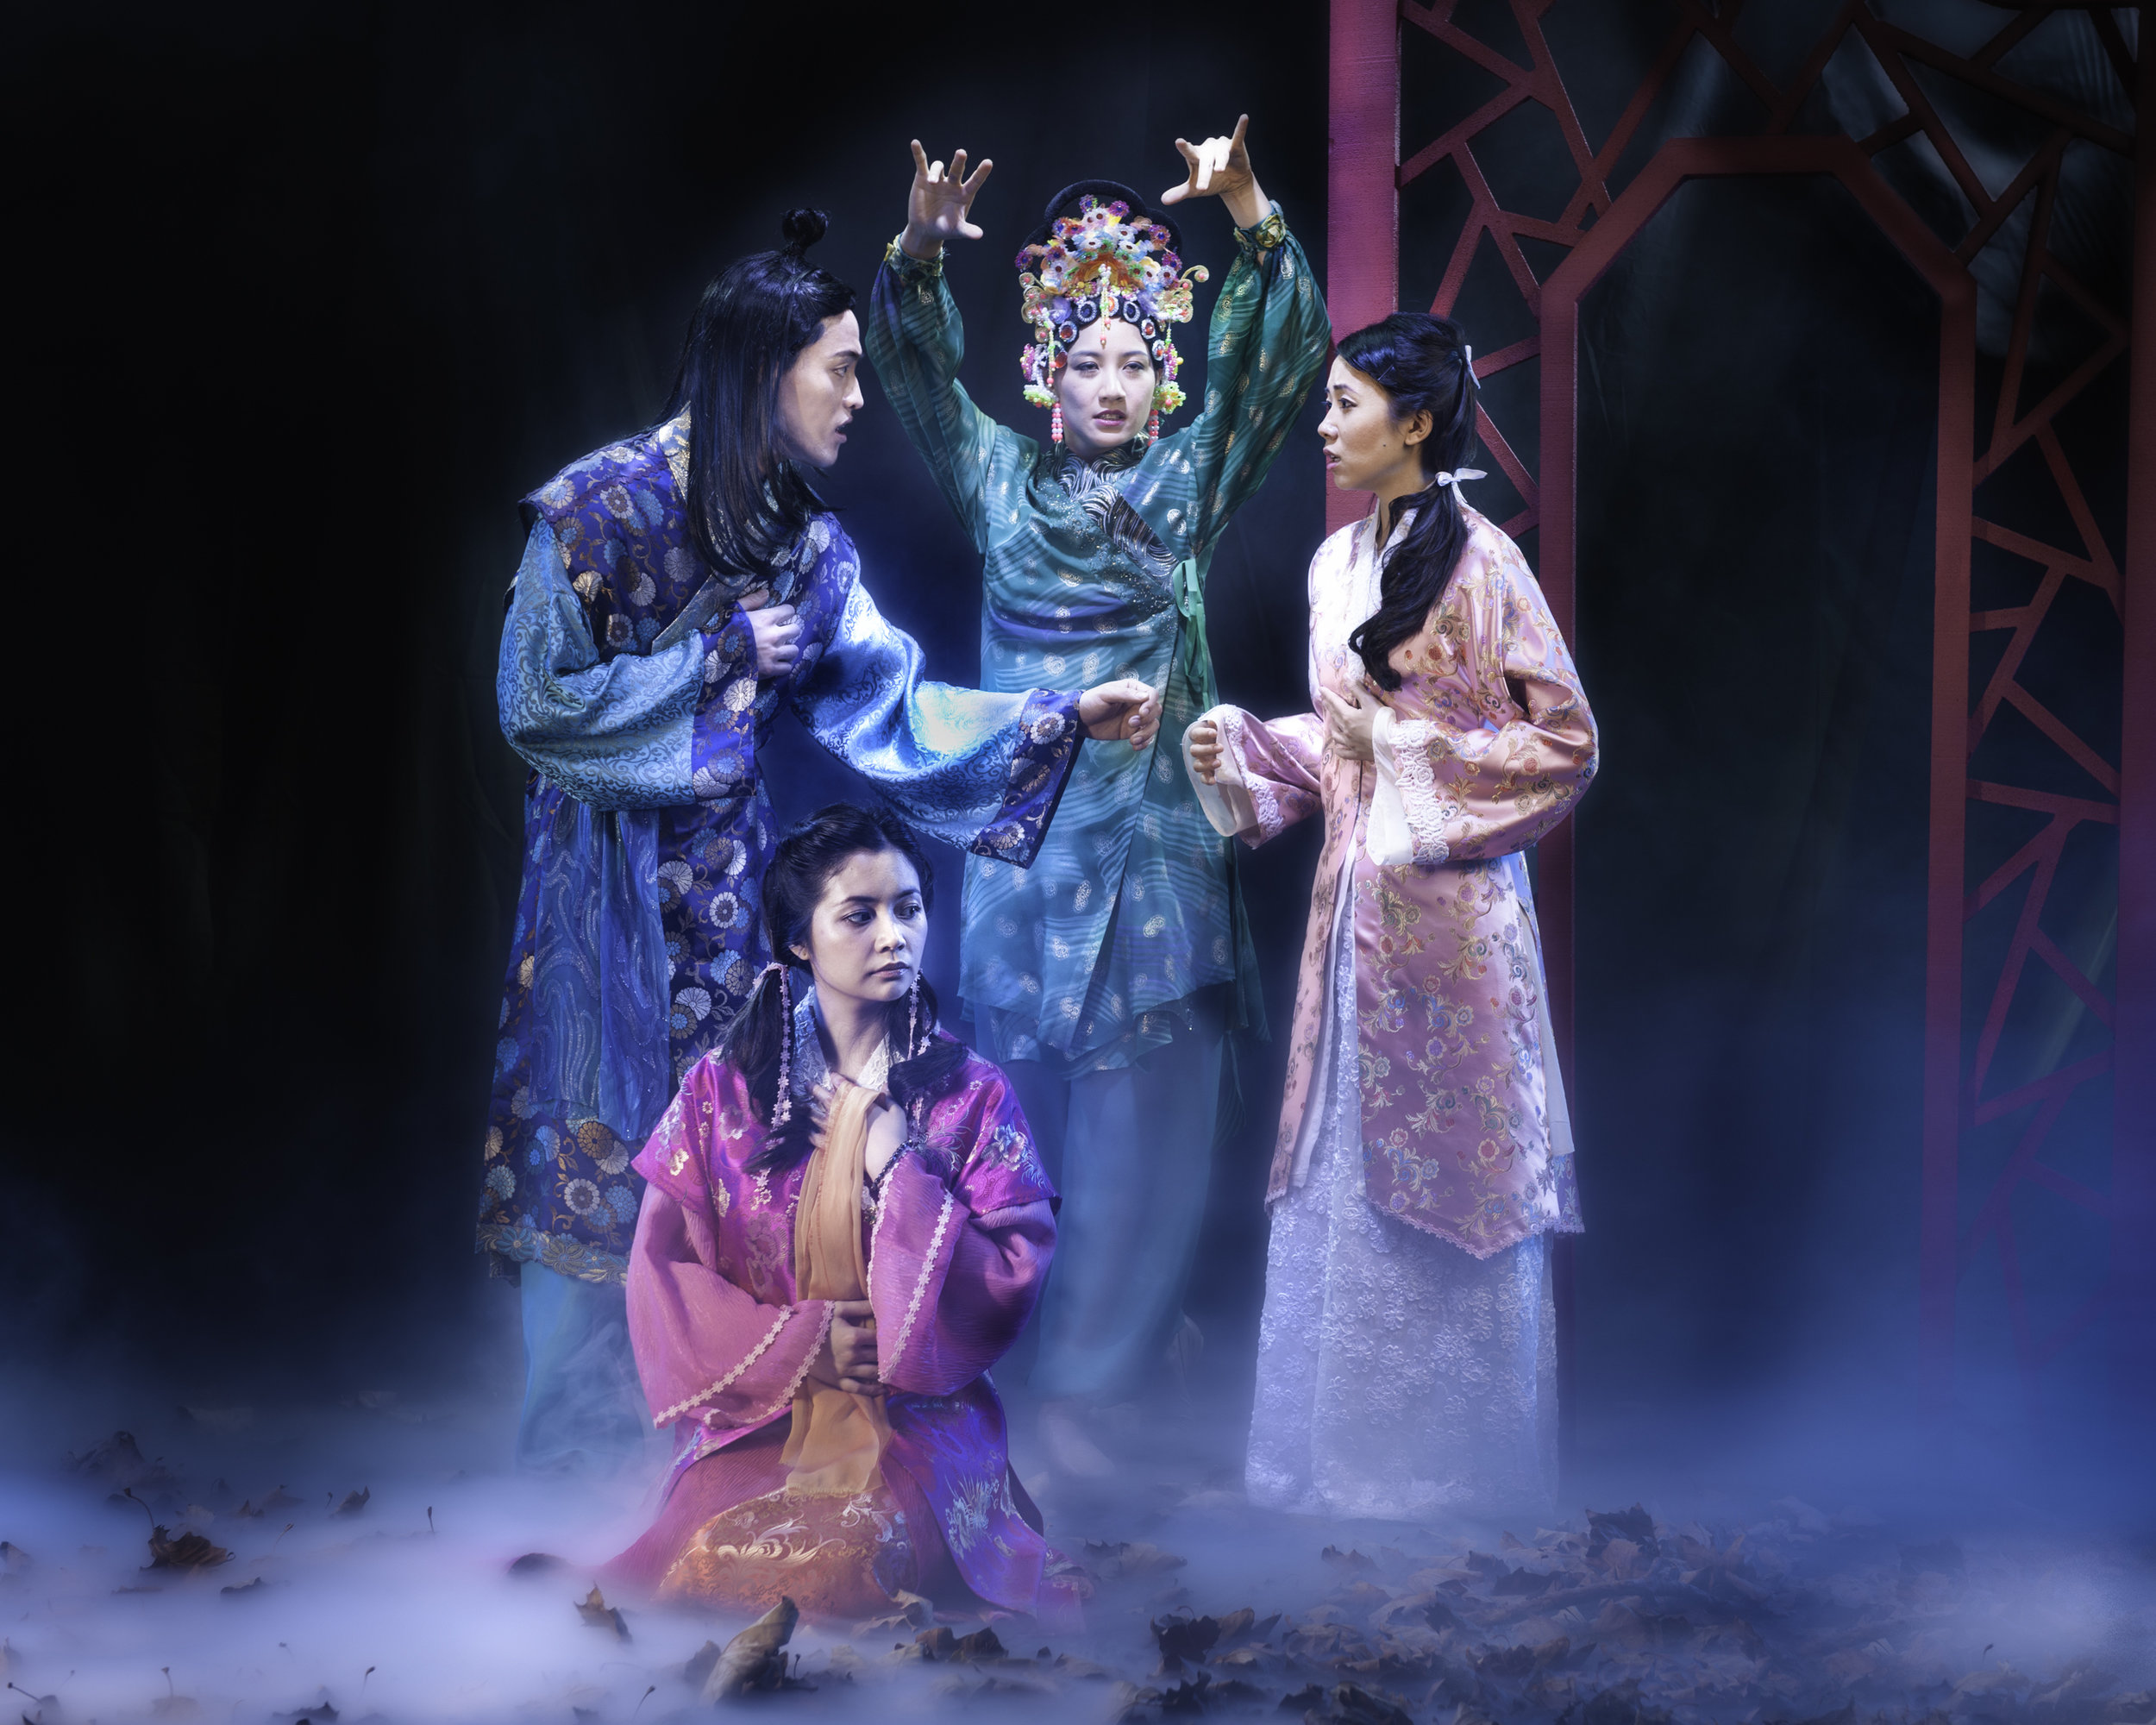 Vichet Chum, Leanne Cabrera, Mandarin Wu and Kelsey Wang in Pan Asian Rep's A DREAM OF RED PAVILIONS photo by Michael Blase PRINT.jpg